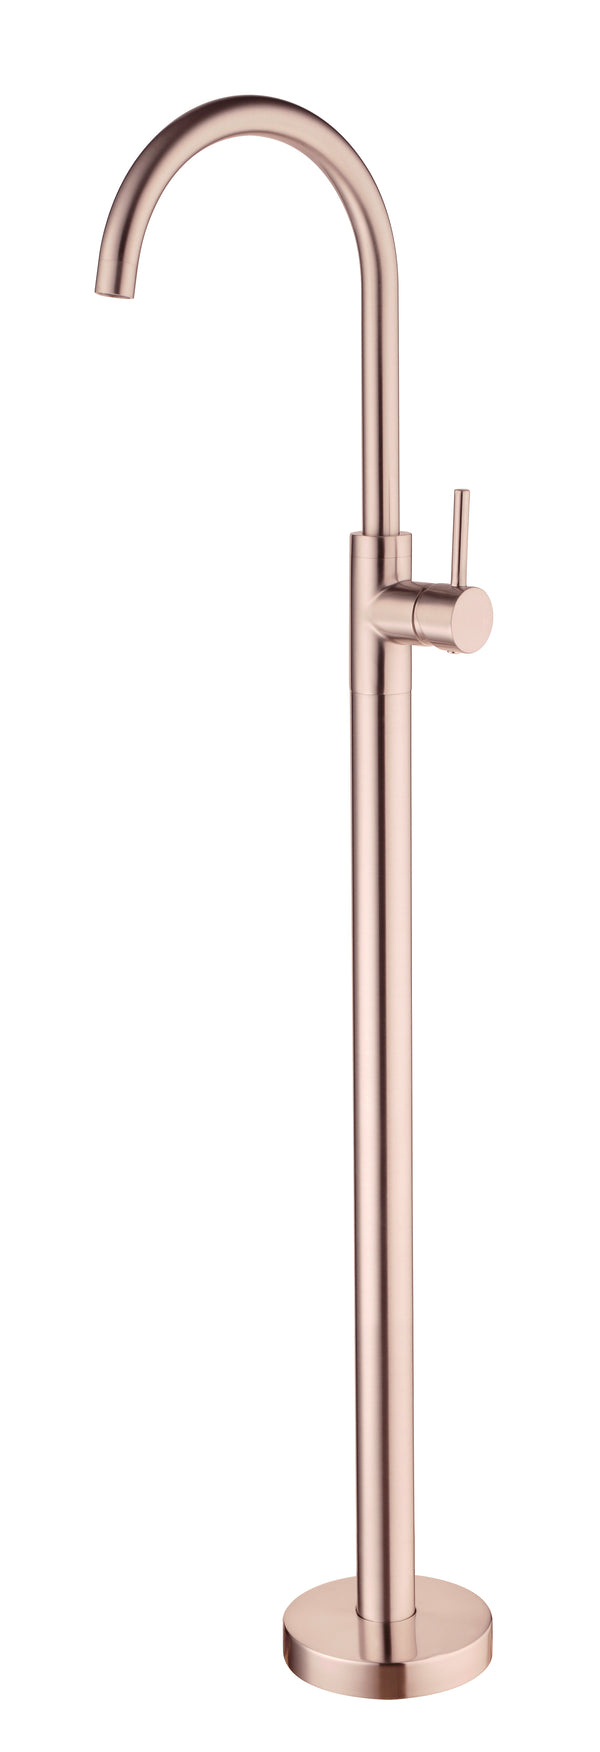 RONDO ROSE GOLD FREE STANDING BATH MIXER